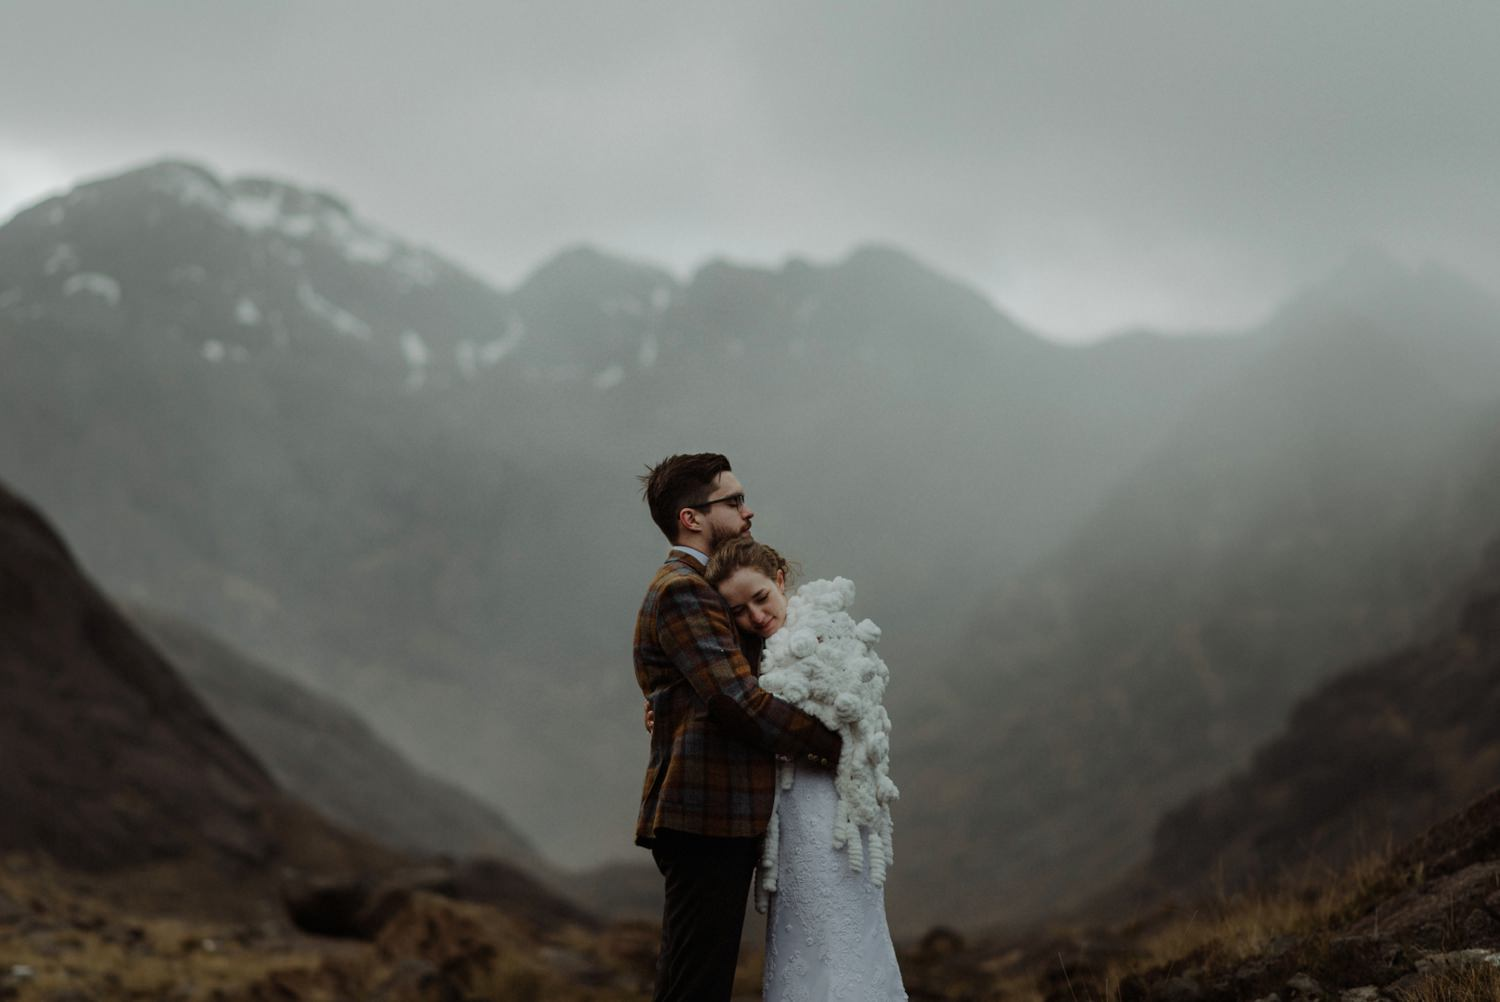 lsle of Skye elopement photographer_0455